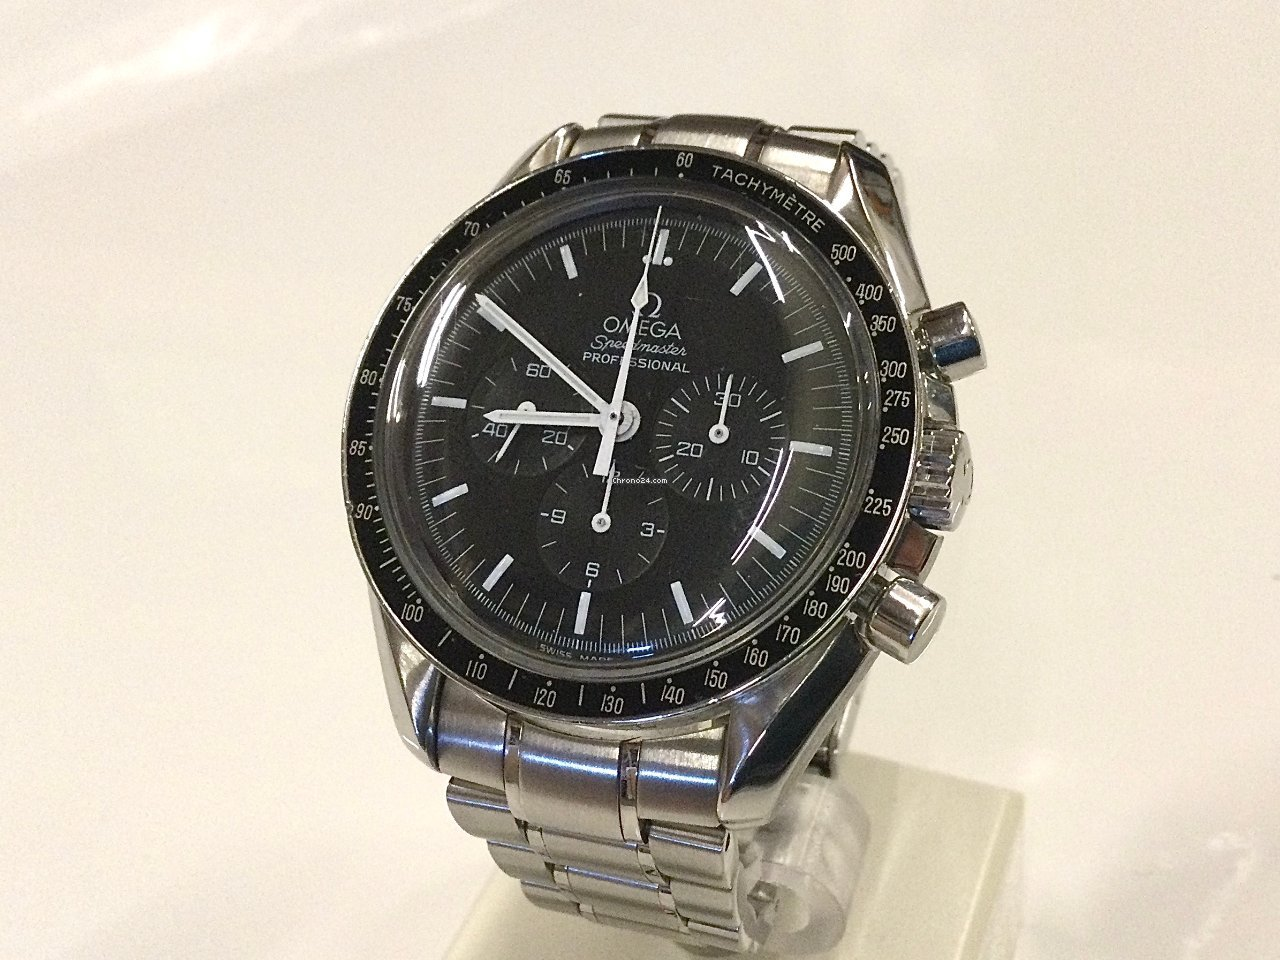 Omega Speedmaster Professional Moonwatch 35605000 1999 pre-owned